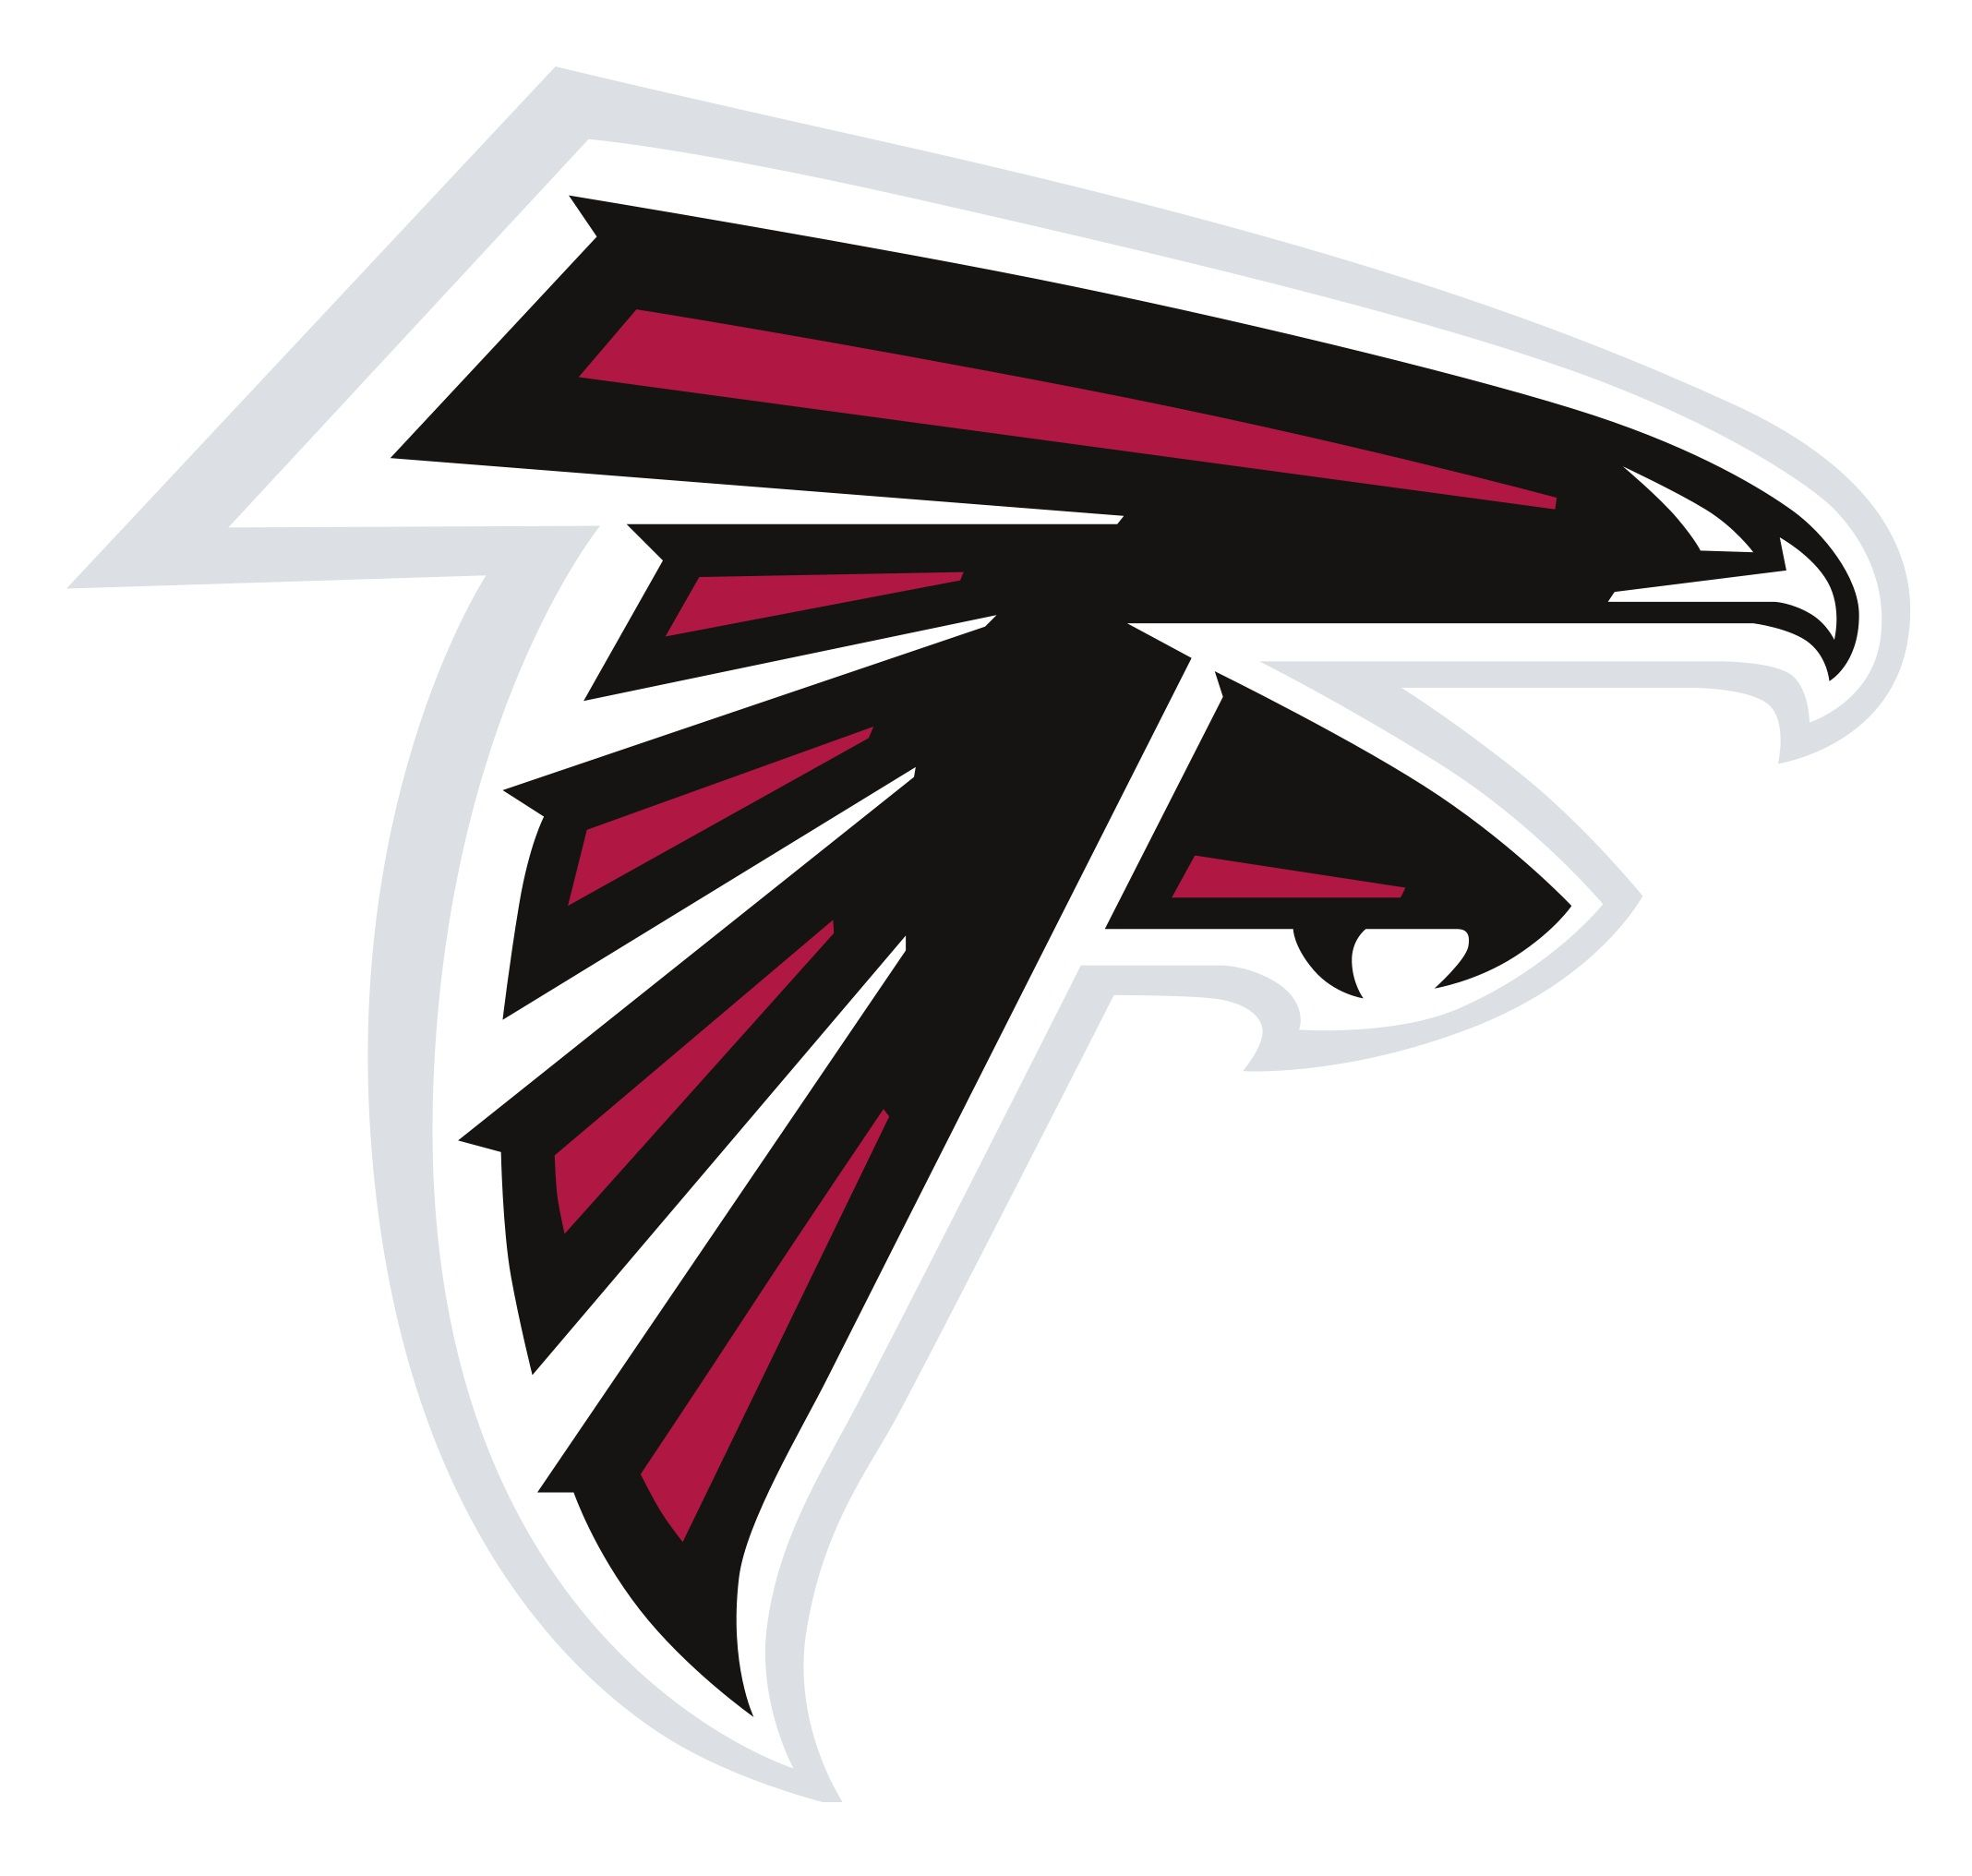 Atlanta Falcons Logo Atlanta Falcons Atlanta Falcons Logo Atlanta Falcons Signs